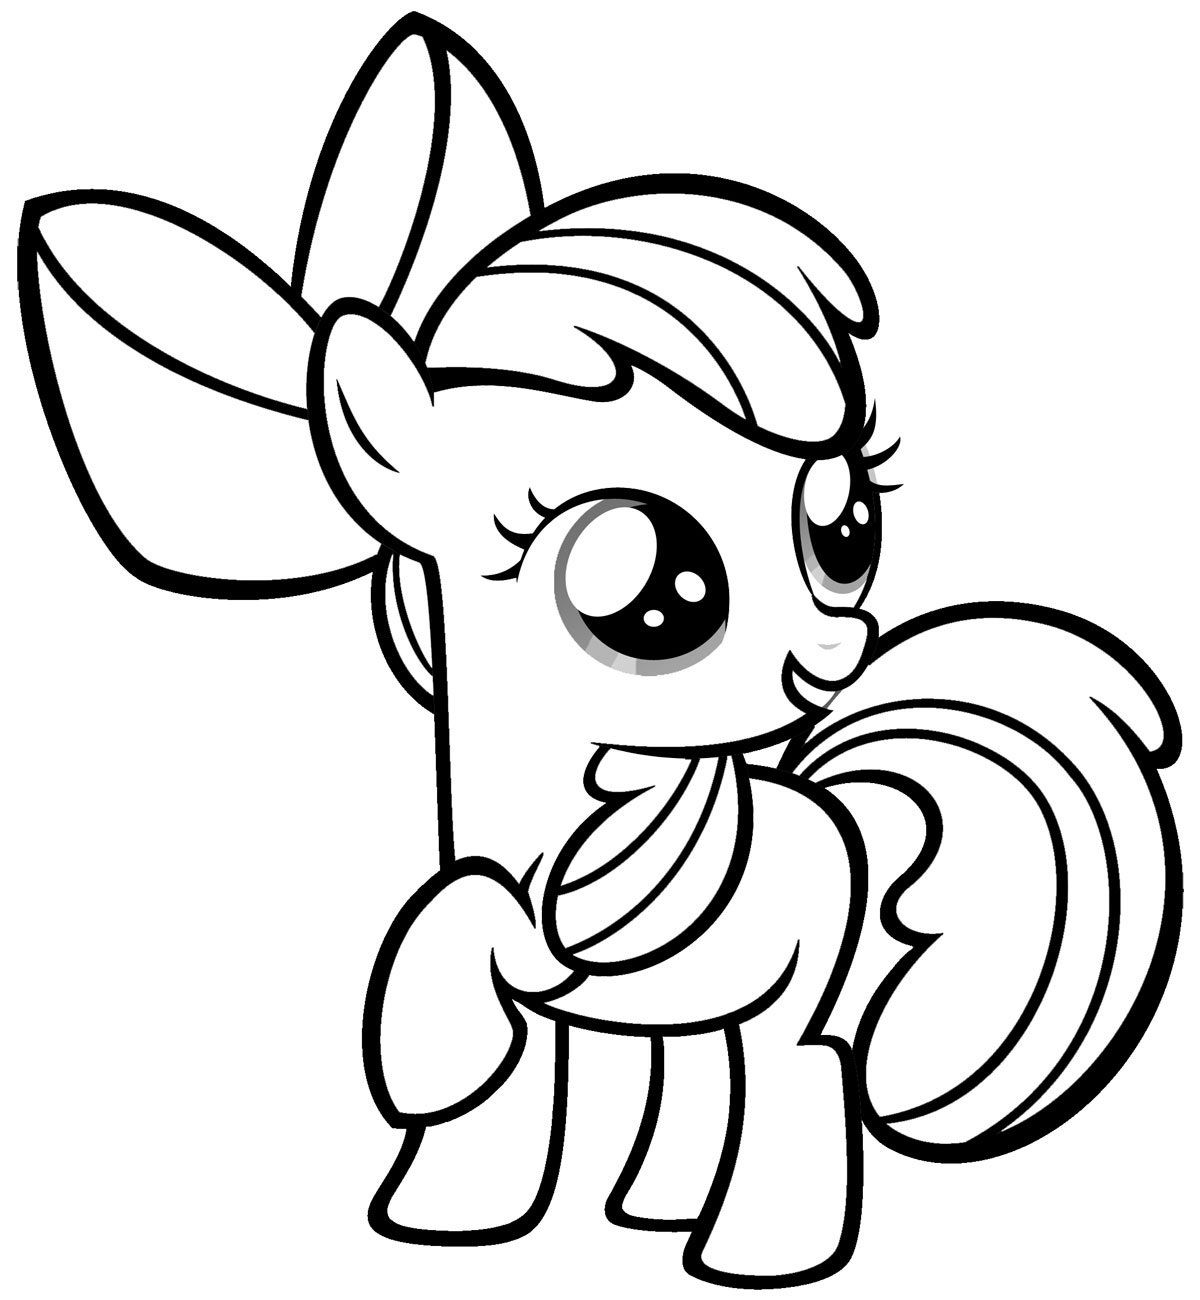 1200x1300 Free Printable My Little Pony Coloring Pages For Kids Free